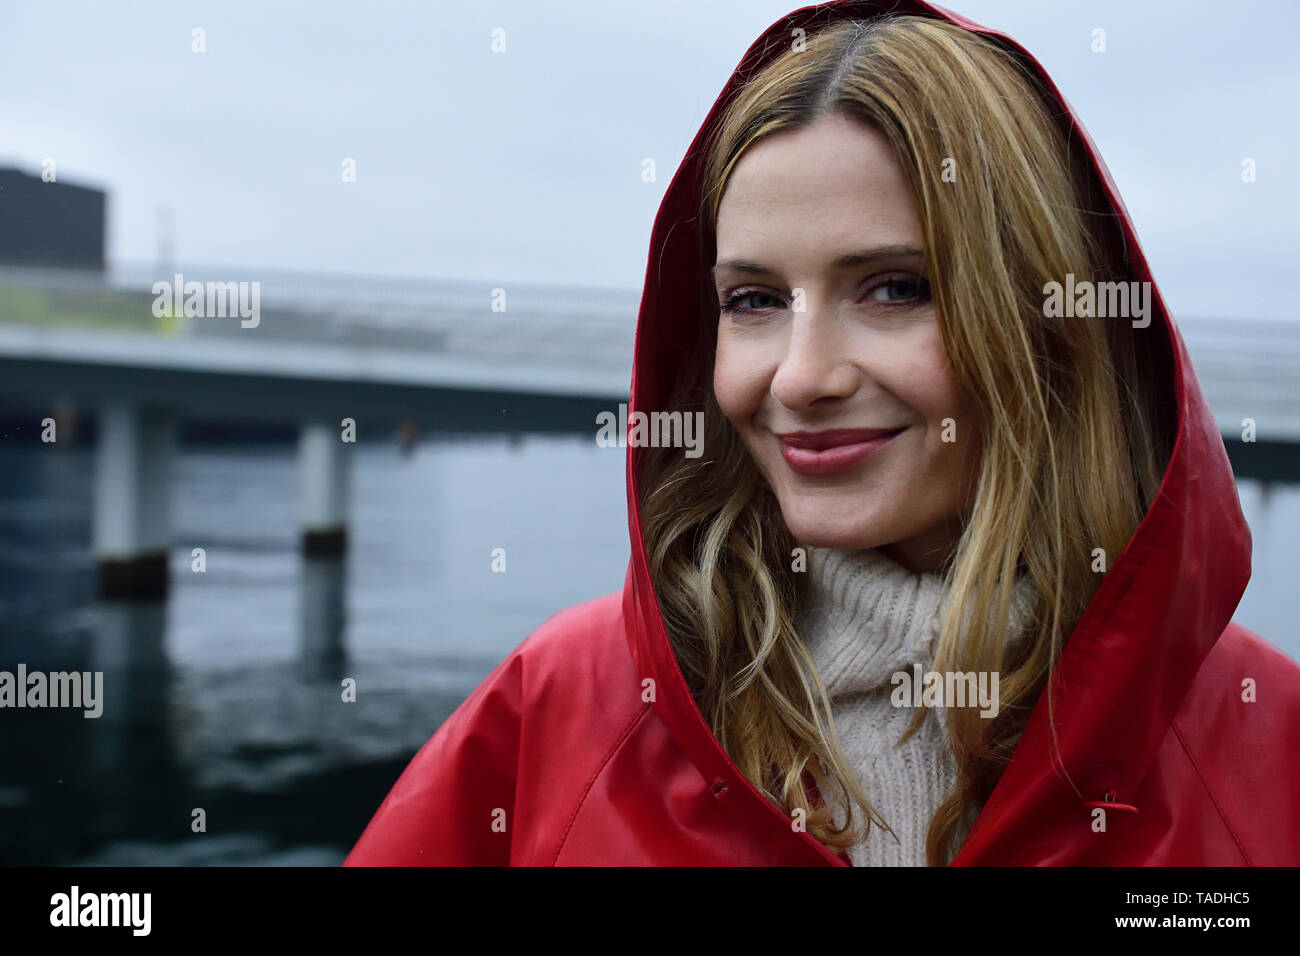 Denmark, Copenhagen, portrait of smiling woman at the waterfront in rainy weather - Stock Image